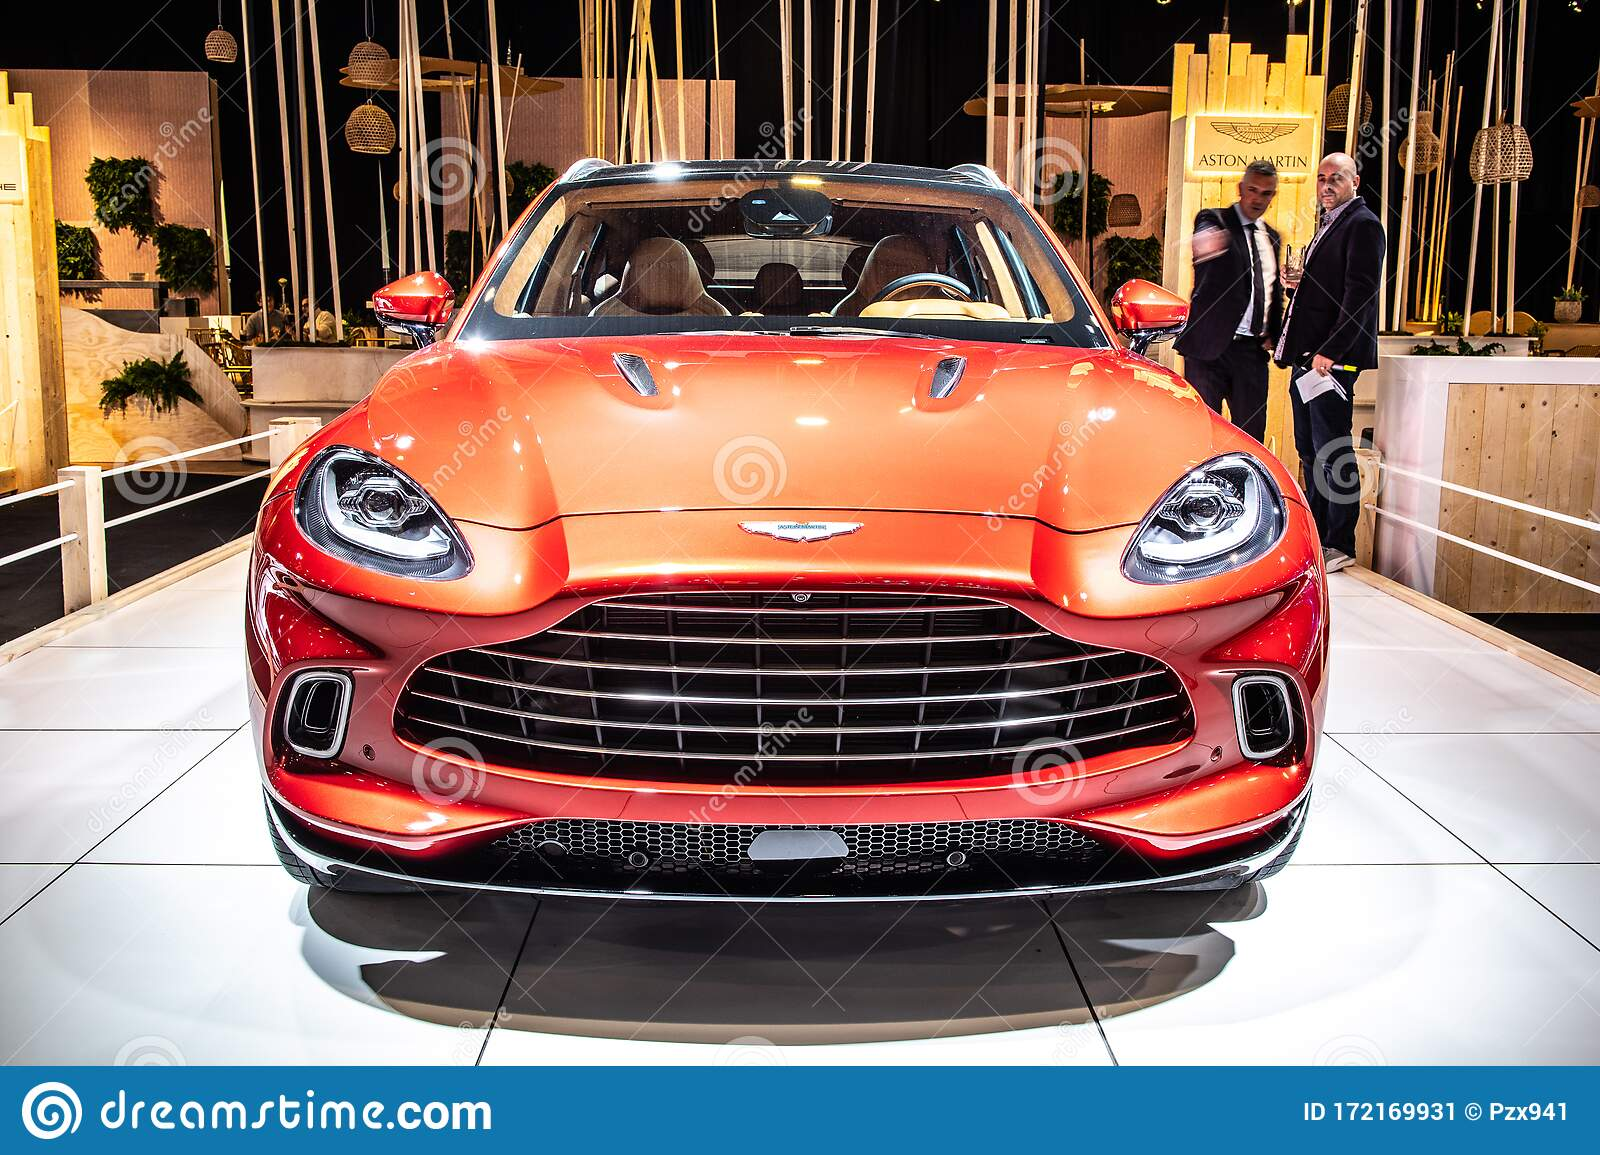 Aston Martin Dbx At Brussels Motor Show Dream Cars British All Wheel Drive Luxury Crossover Suv Produced By Aston Martin Editorial Photo Image Of Motor Modern 172169931